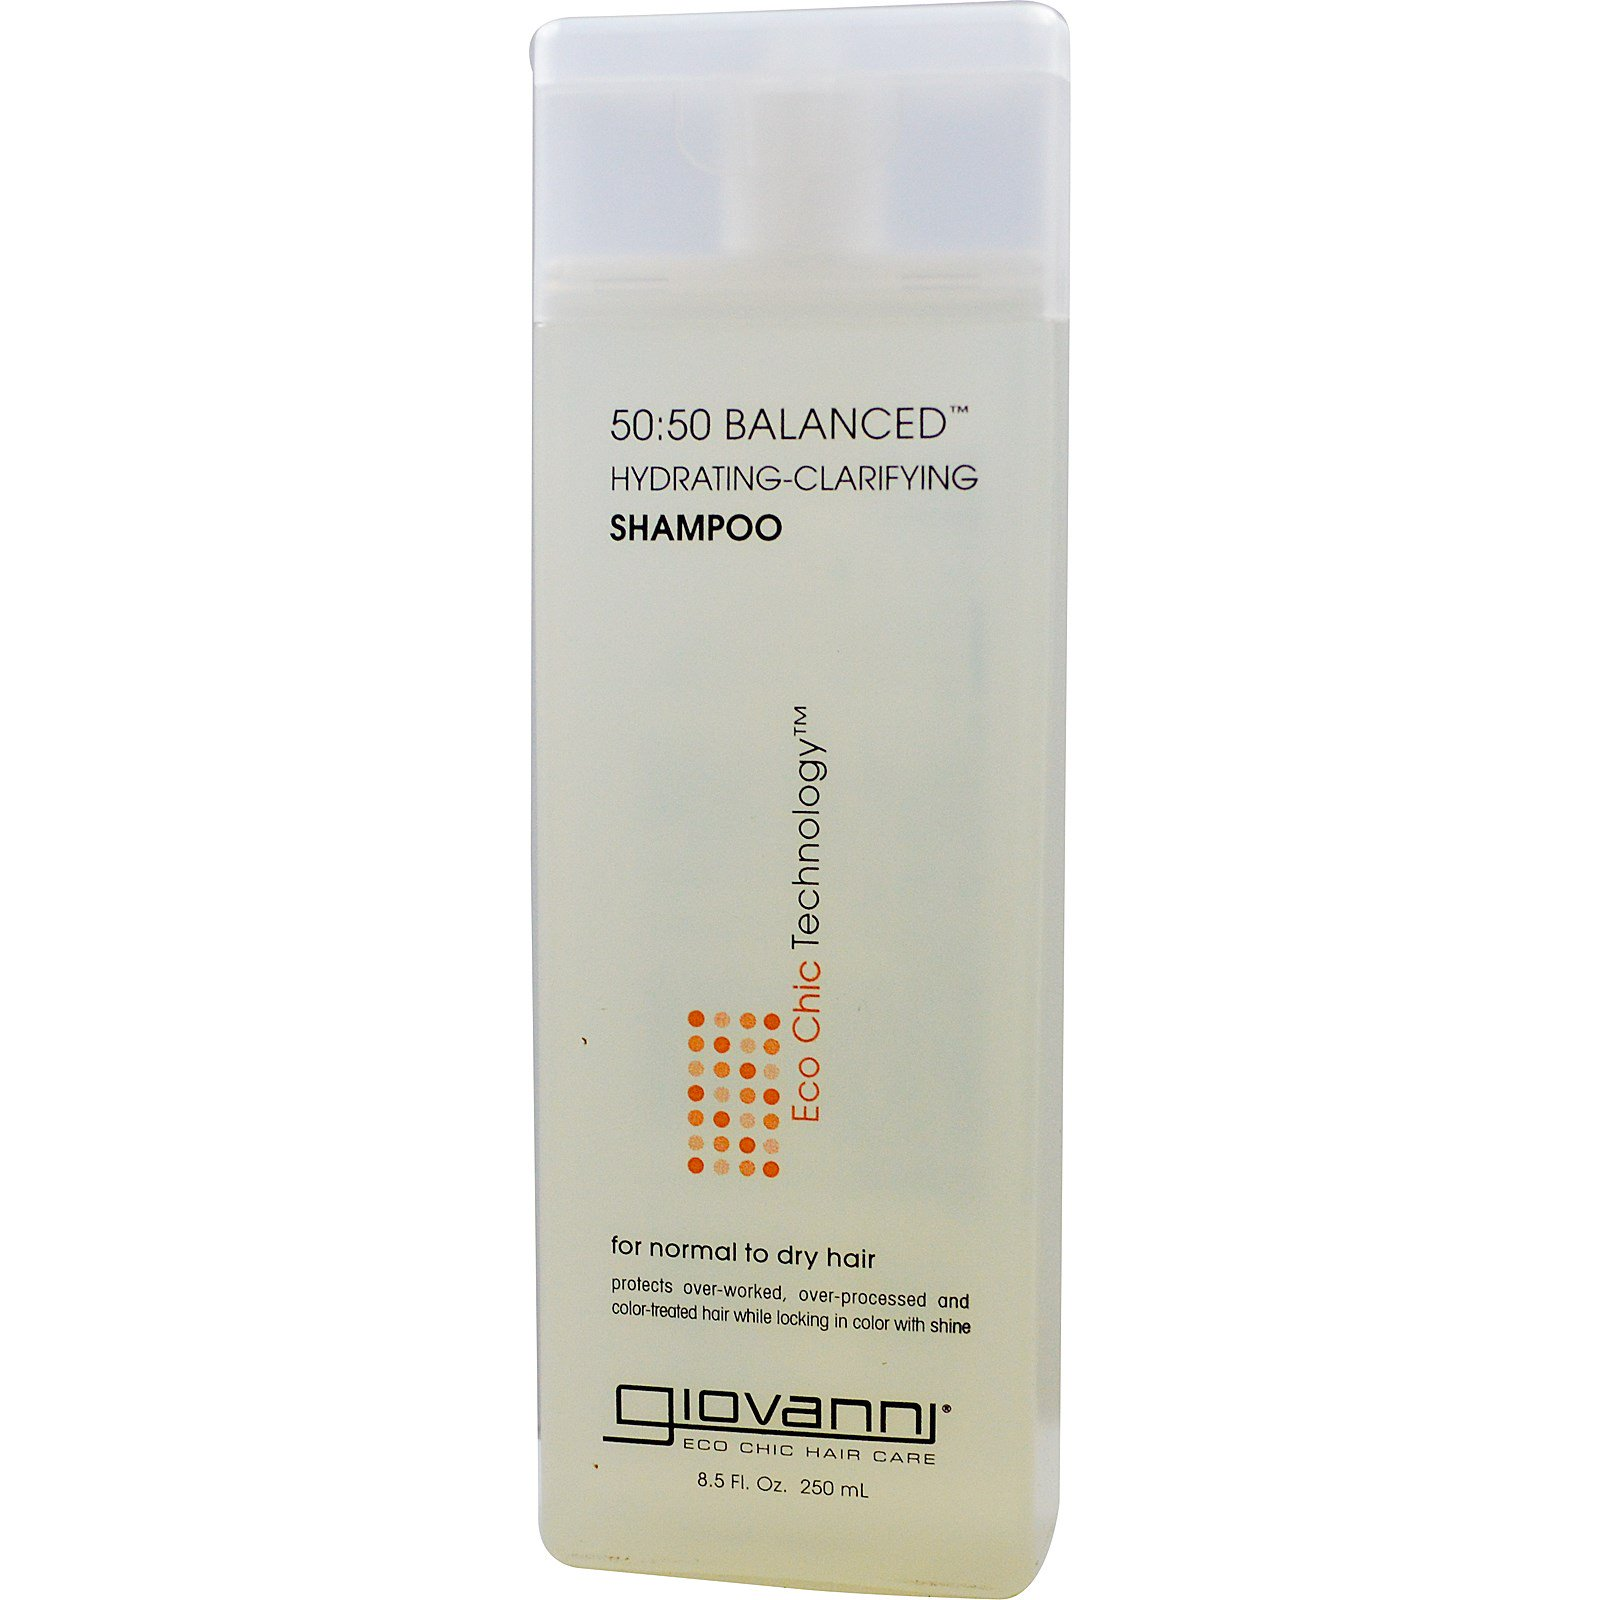 Giovanni 5050 Balanced Hydrating Clarifying Shampoo 85 Fl Oz